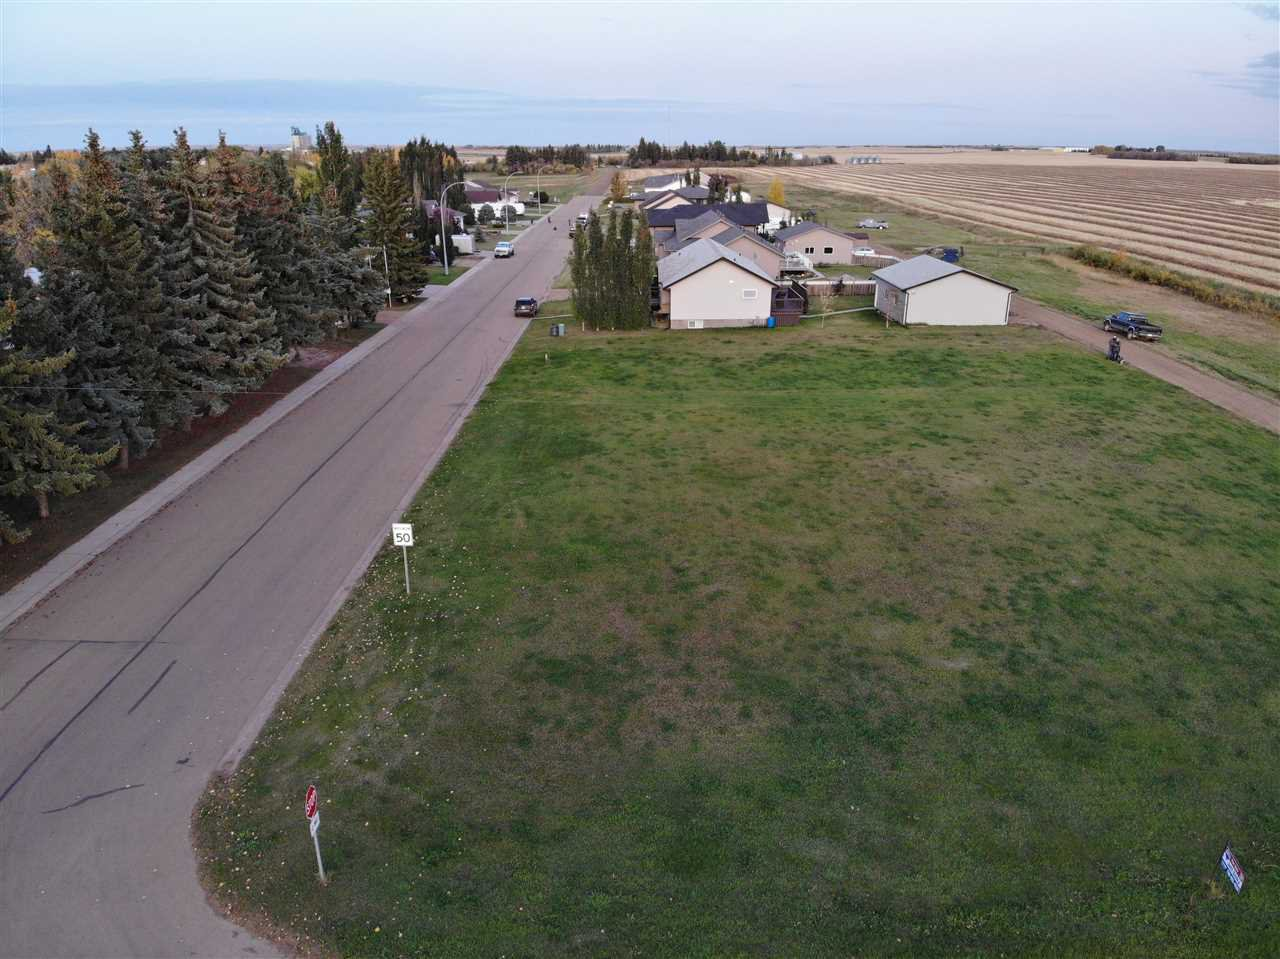 Main Photo: 5609 45 Avenue: Killam Vacant Lot for sale : MLS®# E4207442